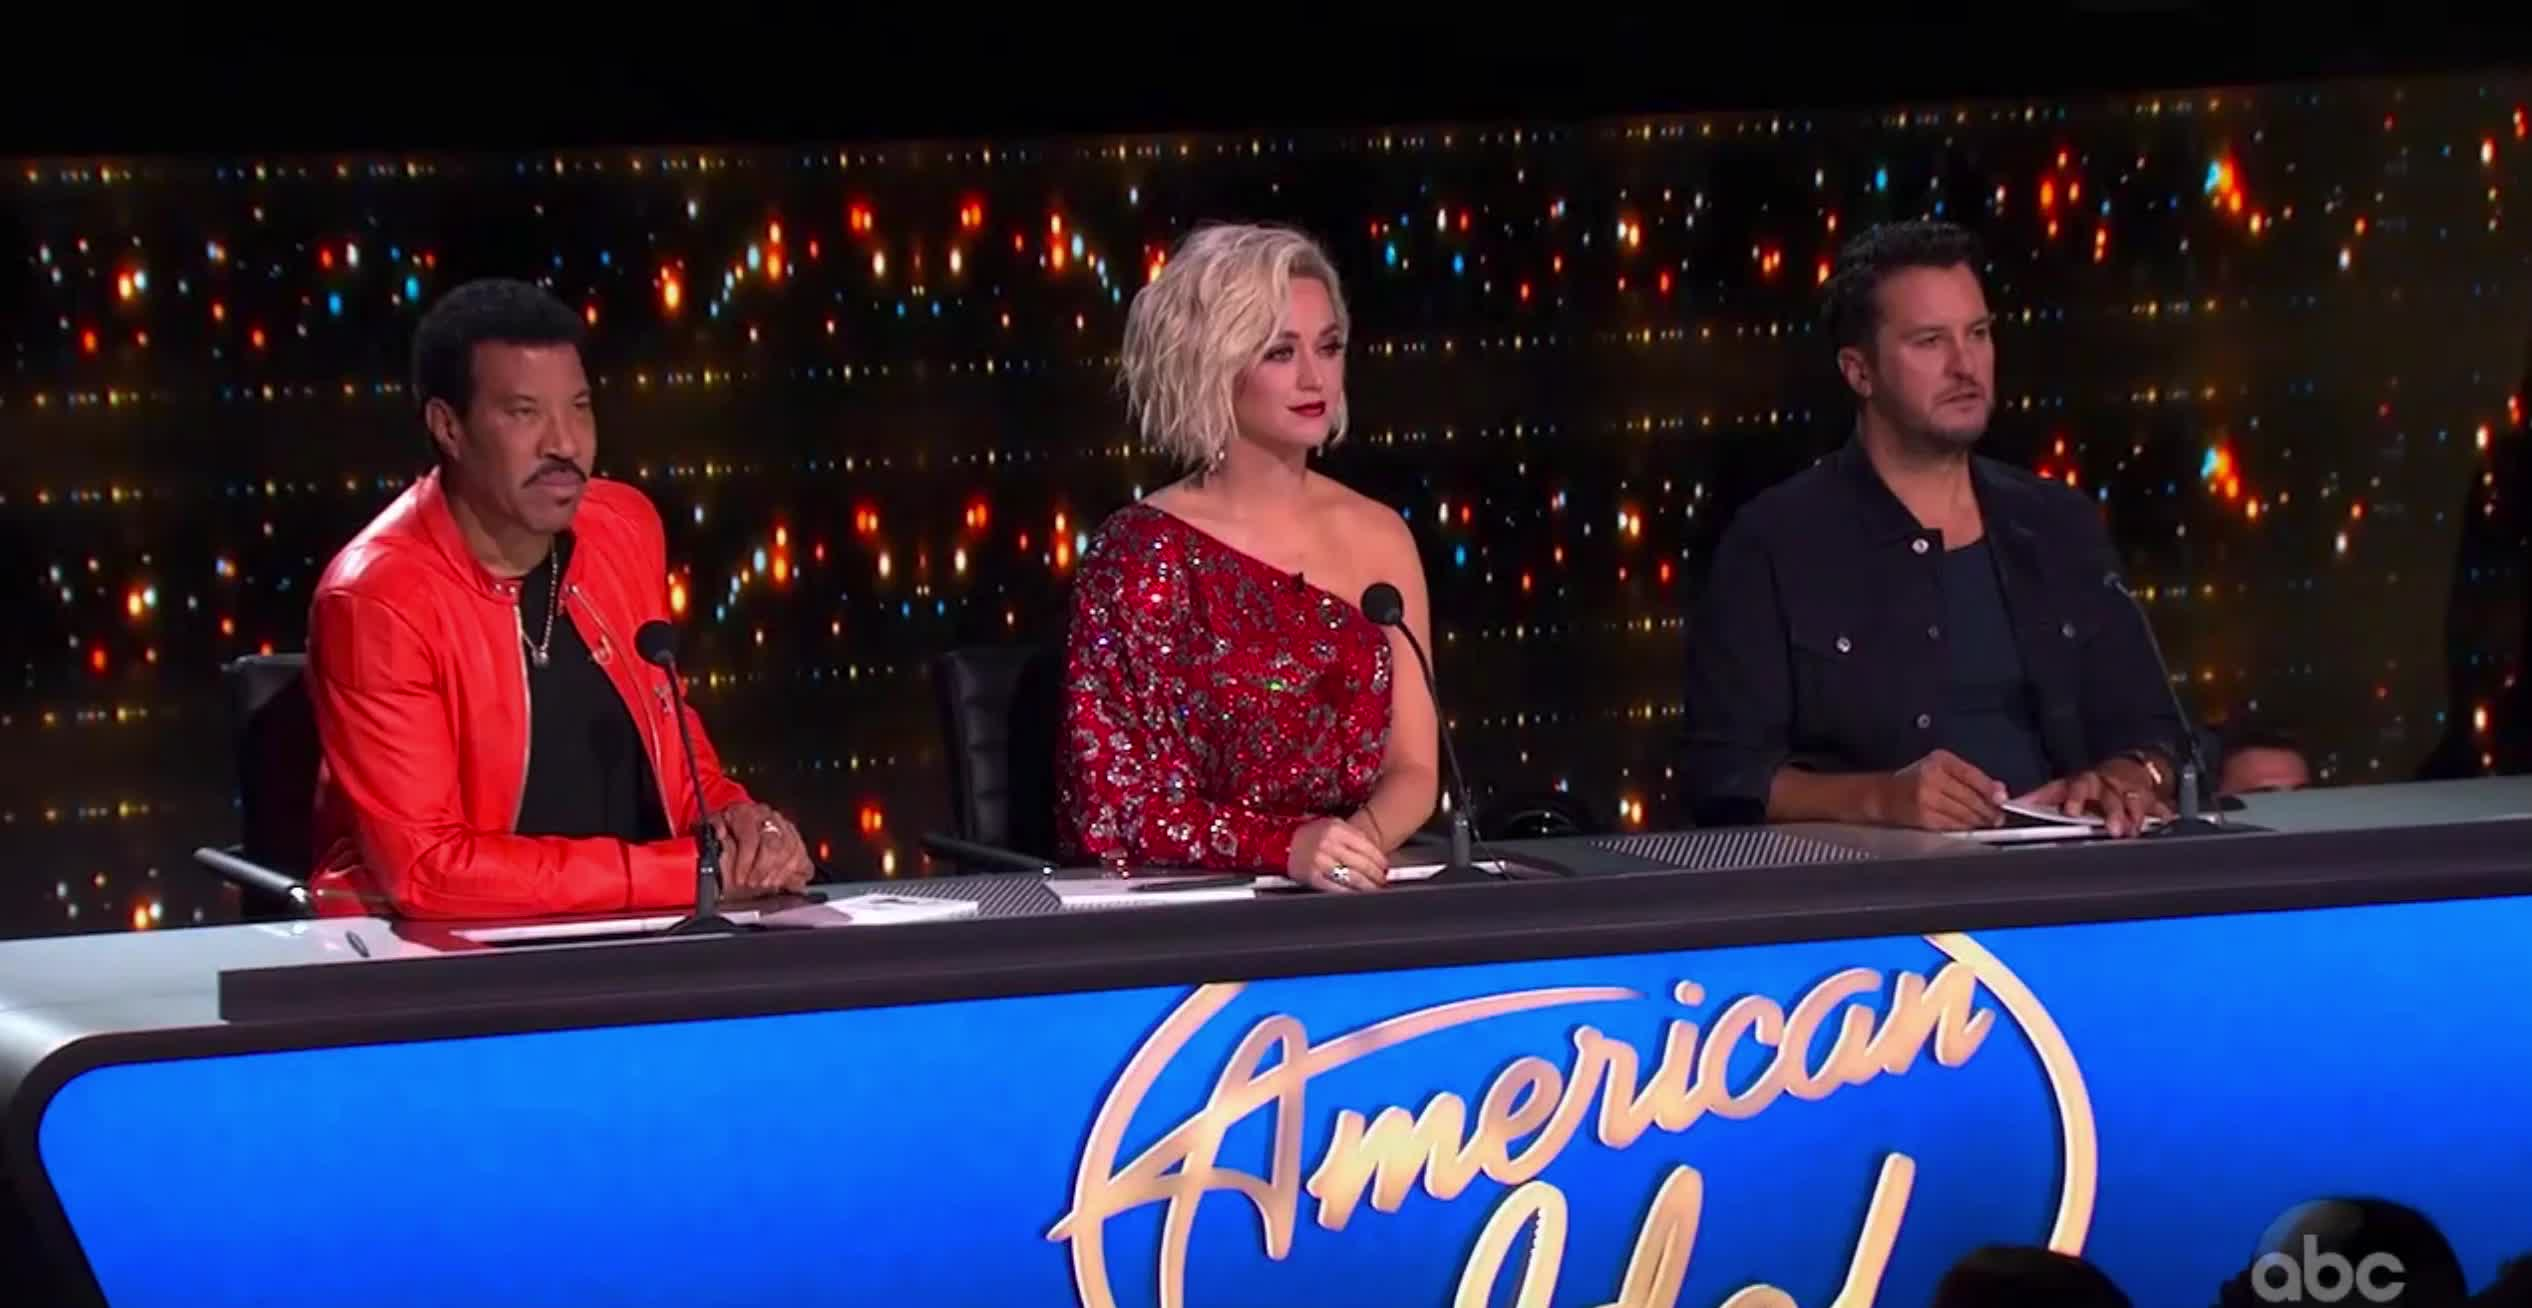 american idol, american idol season 17, americanidol, celebrity, jeremiah lloyd harmon, judges, katy perry, lionel richie, luke bryan, ryan seacrest, season 17, staring, American Idol Judges Enjoying Jeremiah's Performance GIFs